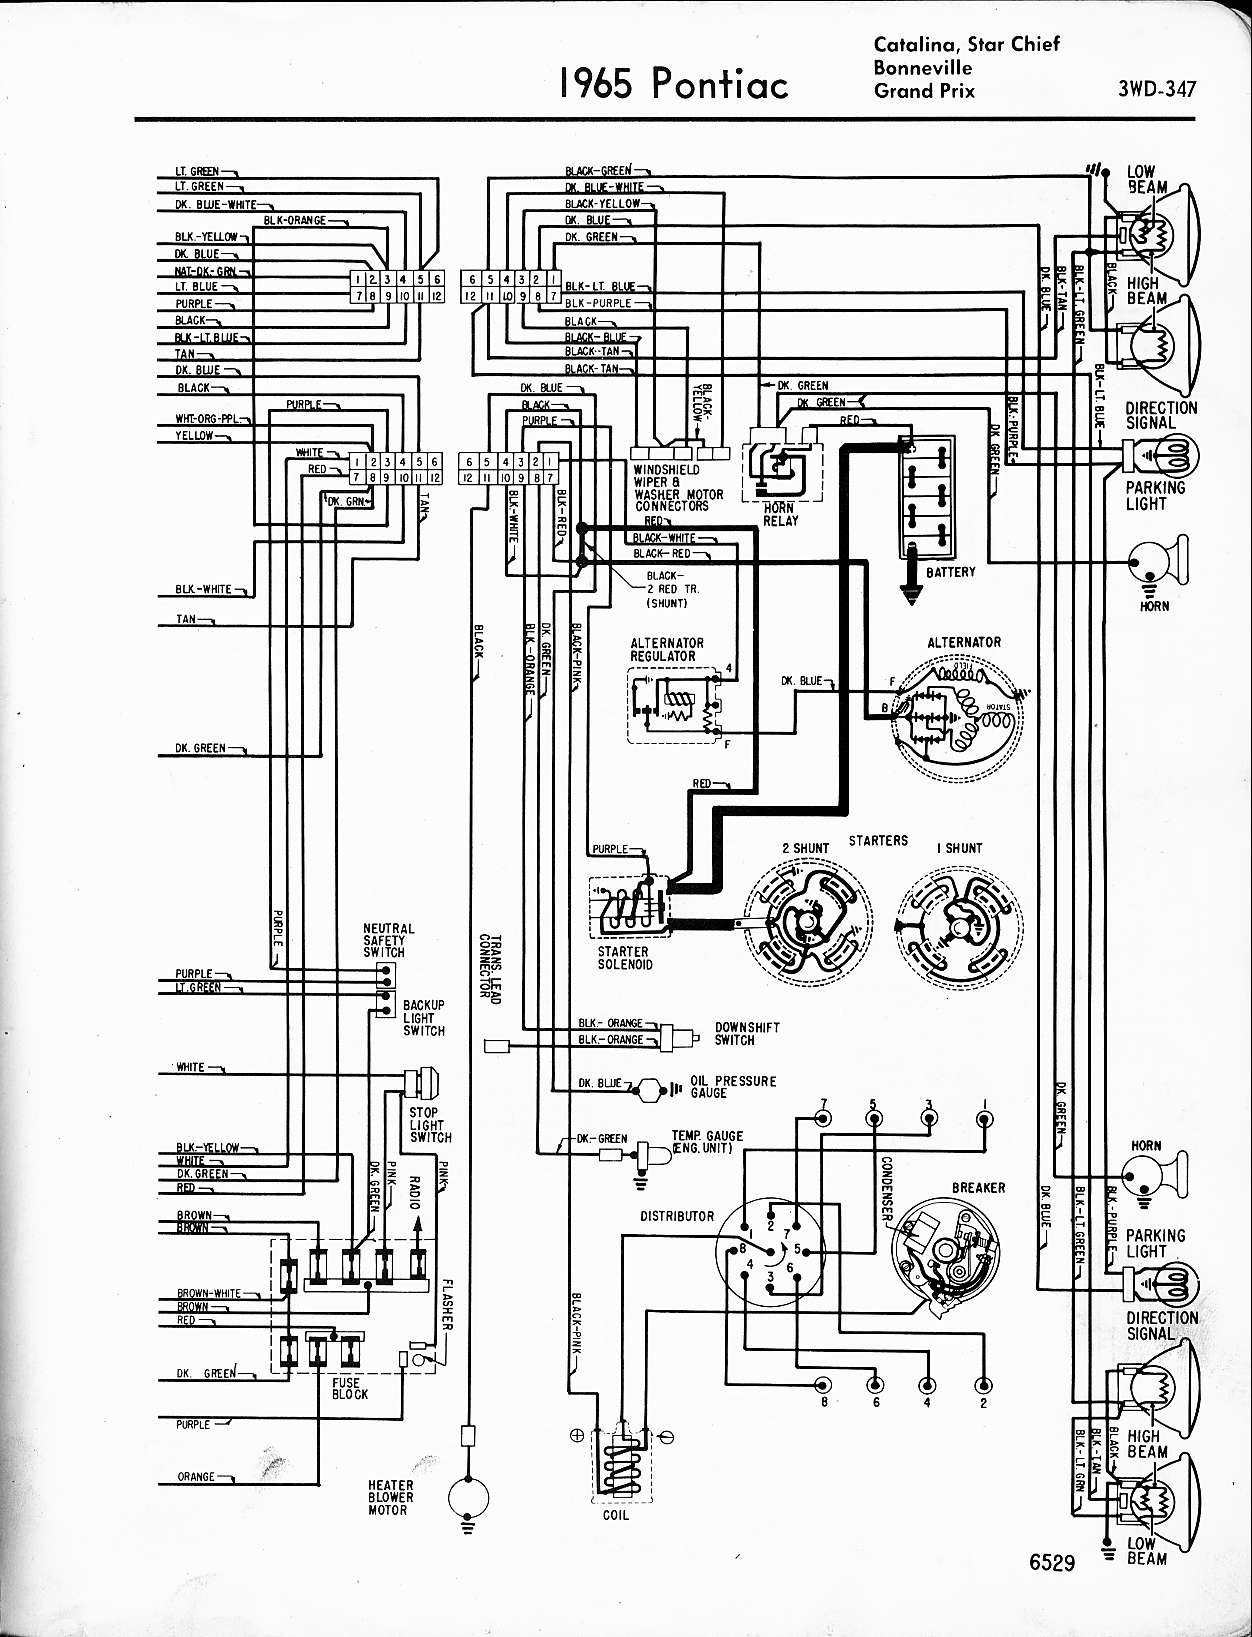 1966 pontiac fuse box simple wiring diagram 1966 cutlass wiring diagram wiring diagram libraries pontiac steering column 1966 pontiac fuse box